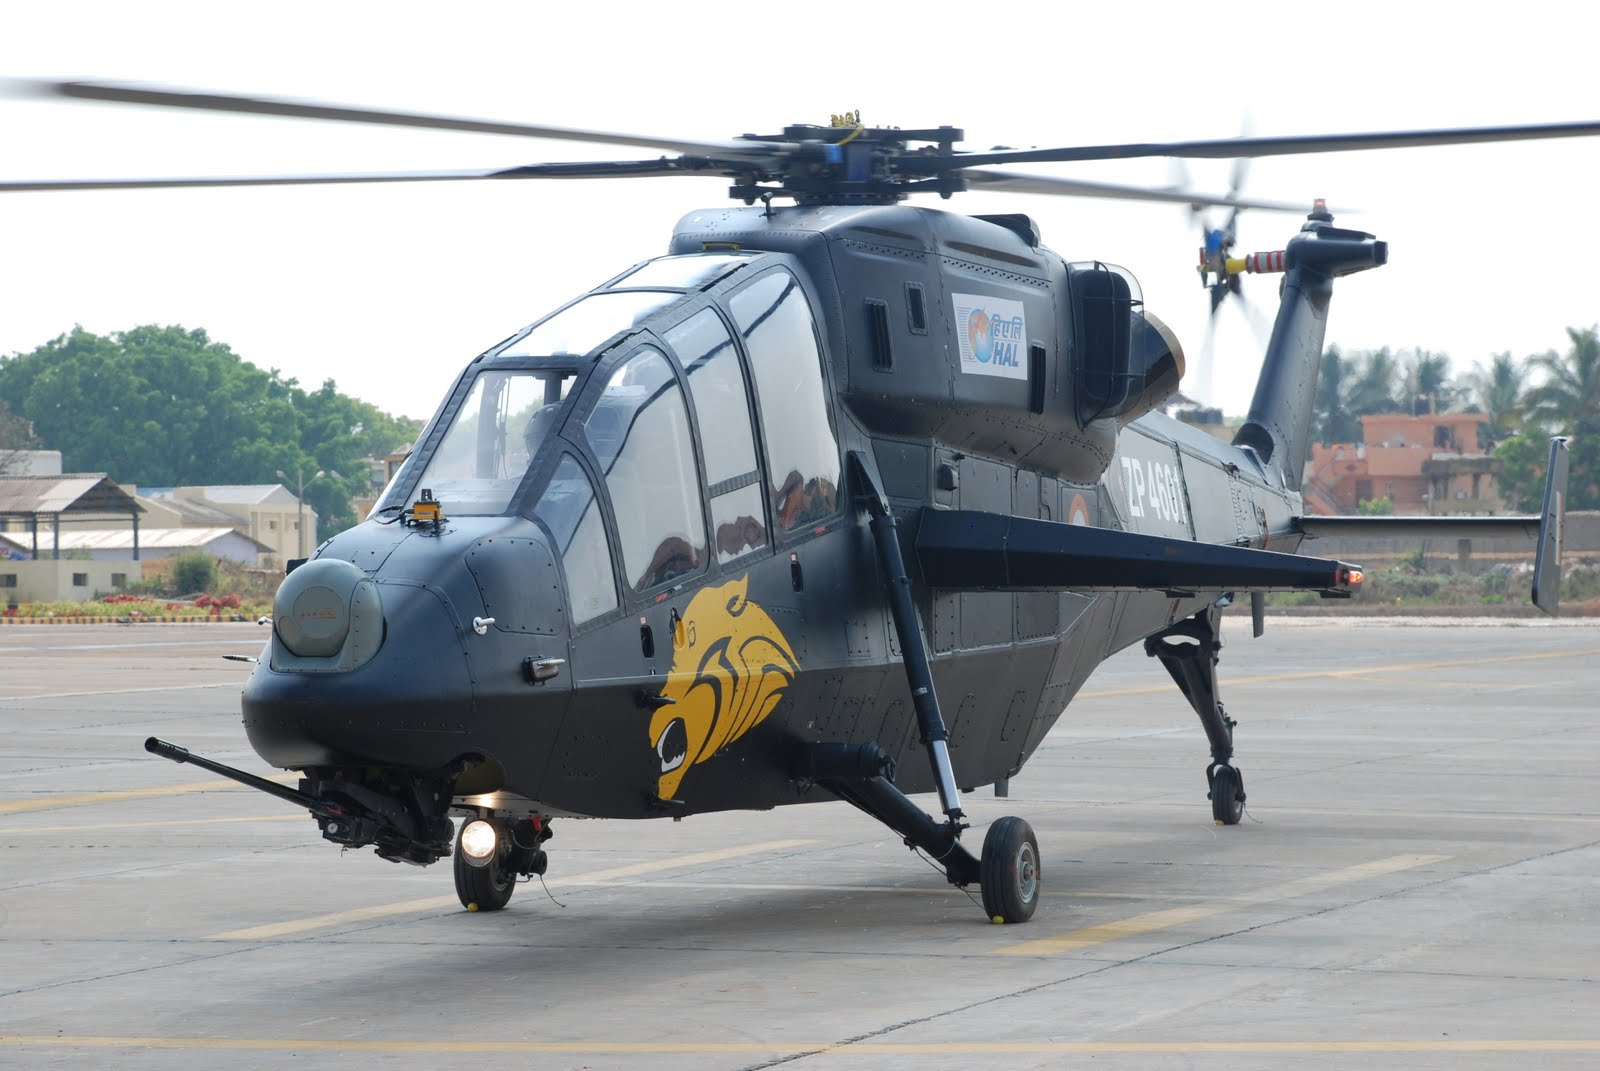 Indian air force is looking to add more muscle to its inventory